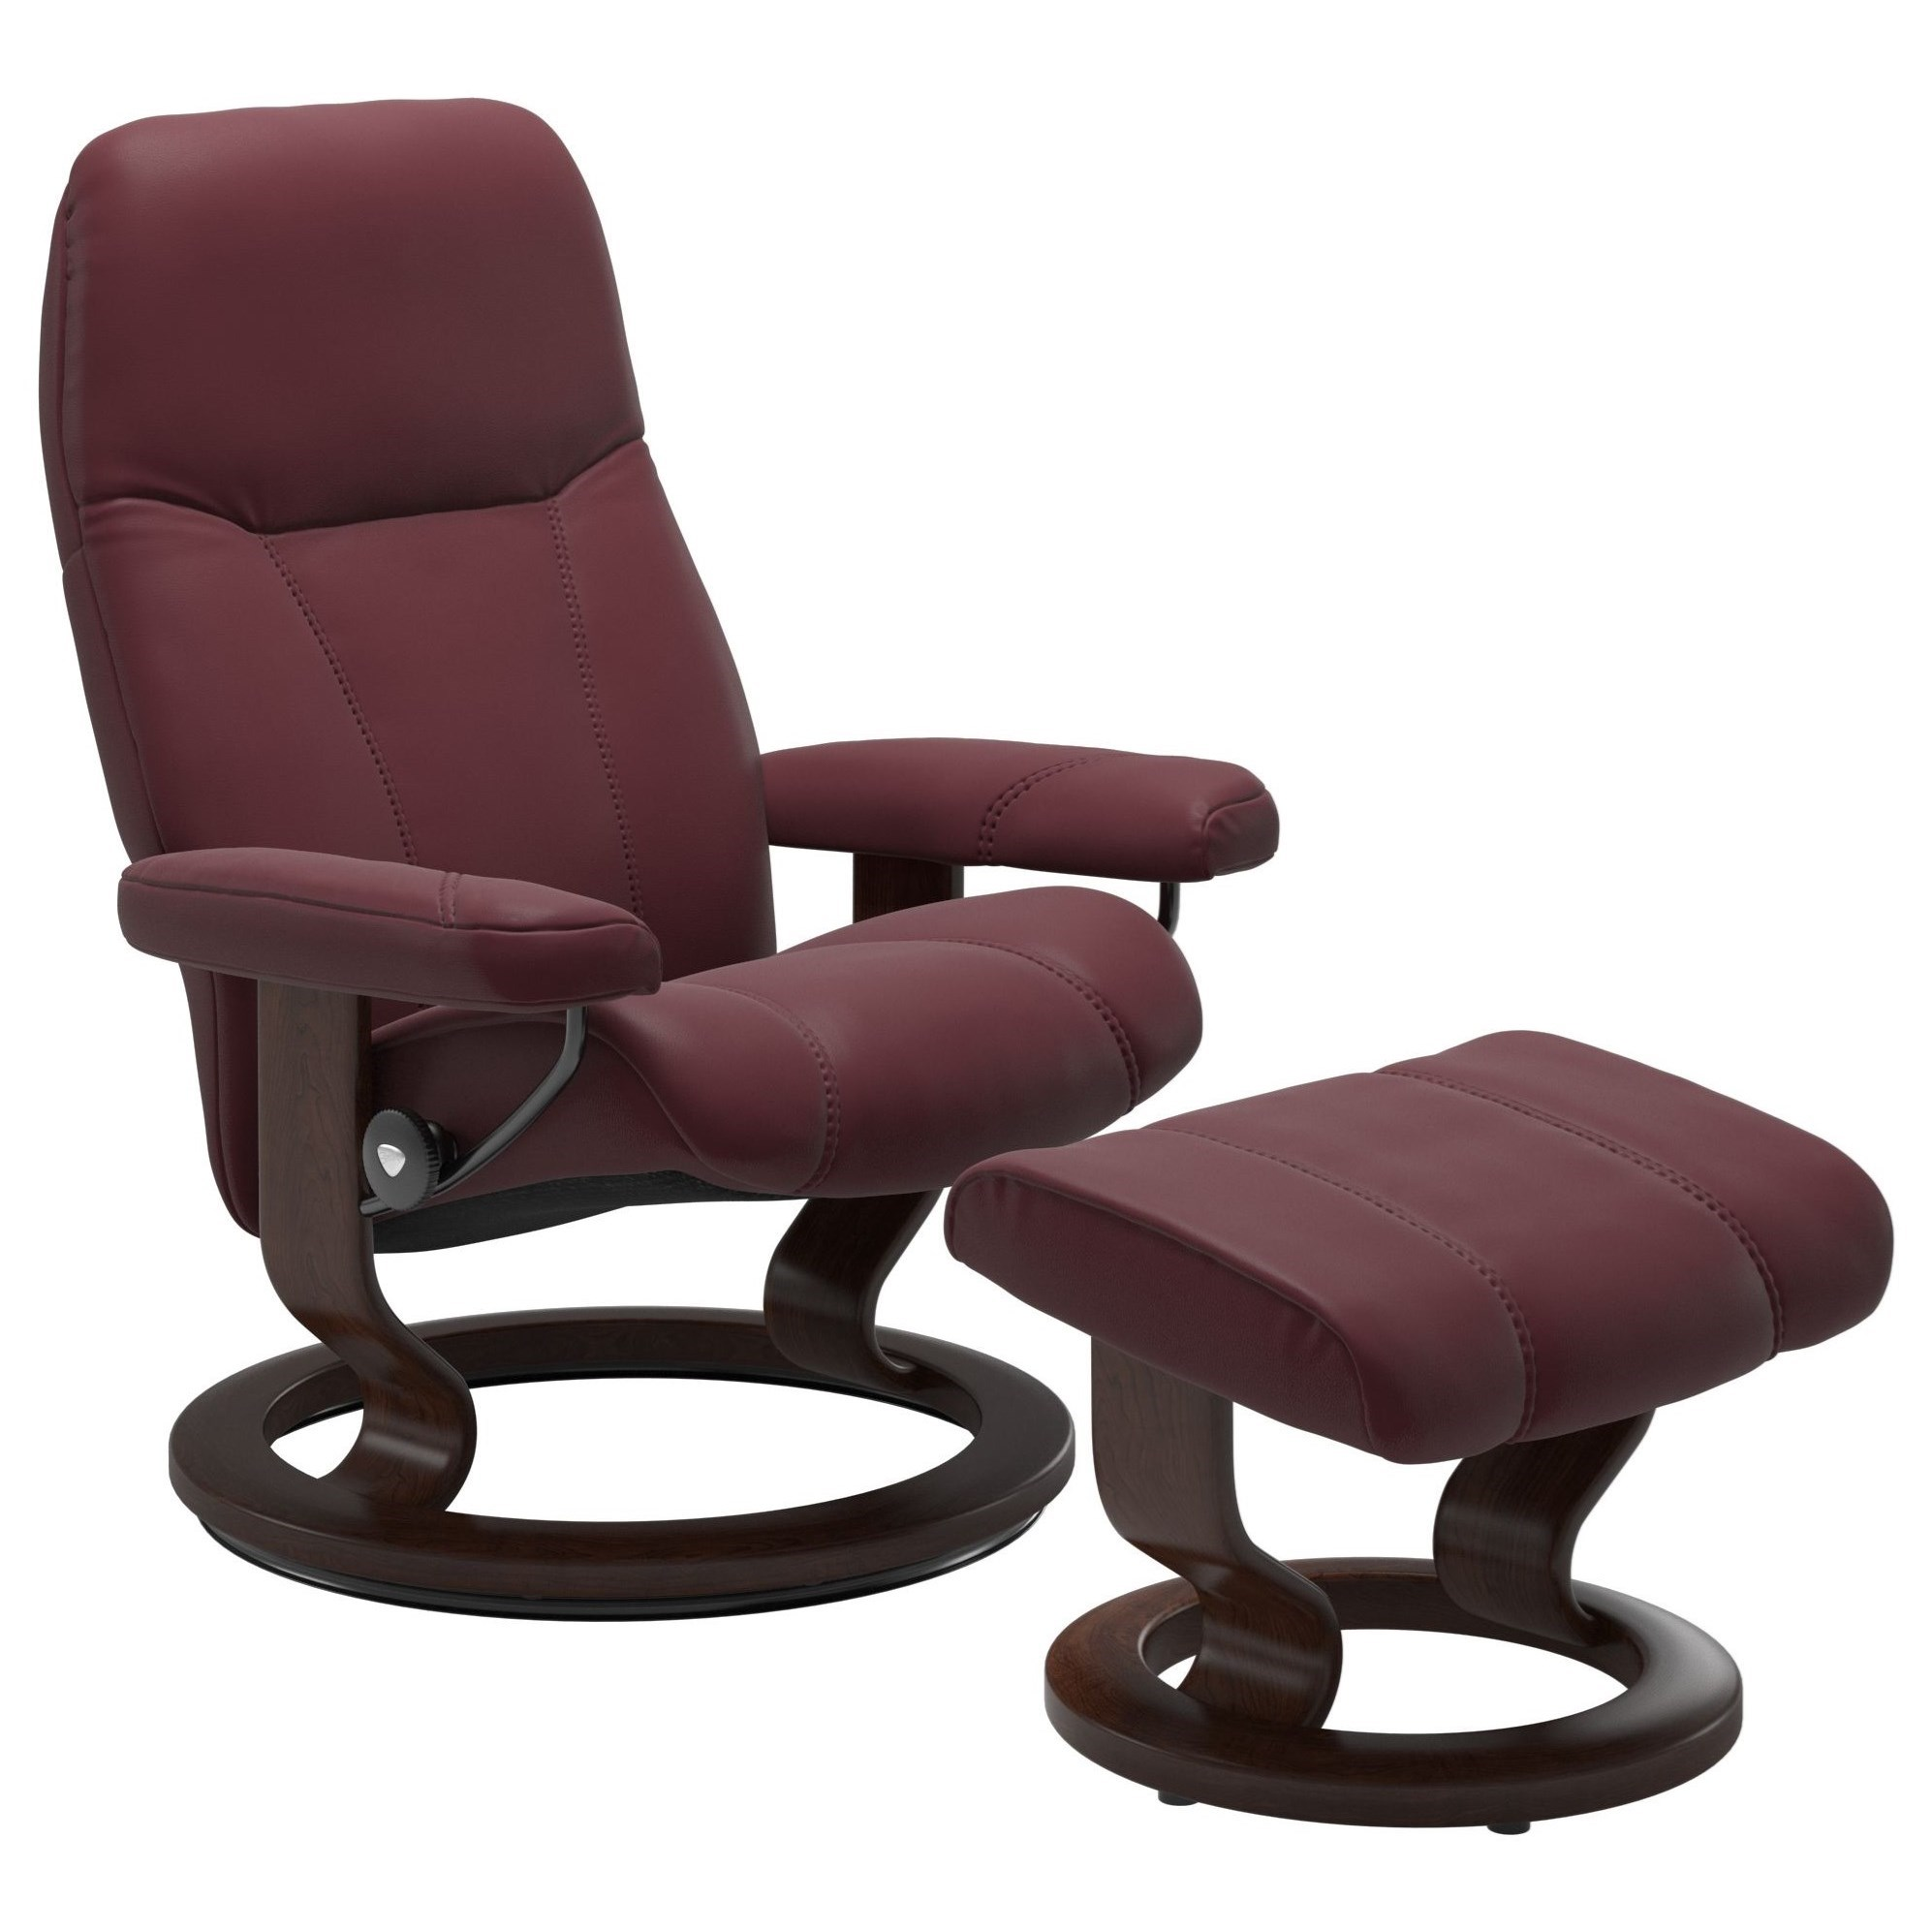 Consul Large Chair & Ottoman with Classic Base by Stressless at HomeWorld Furniture